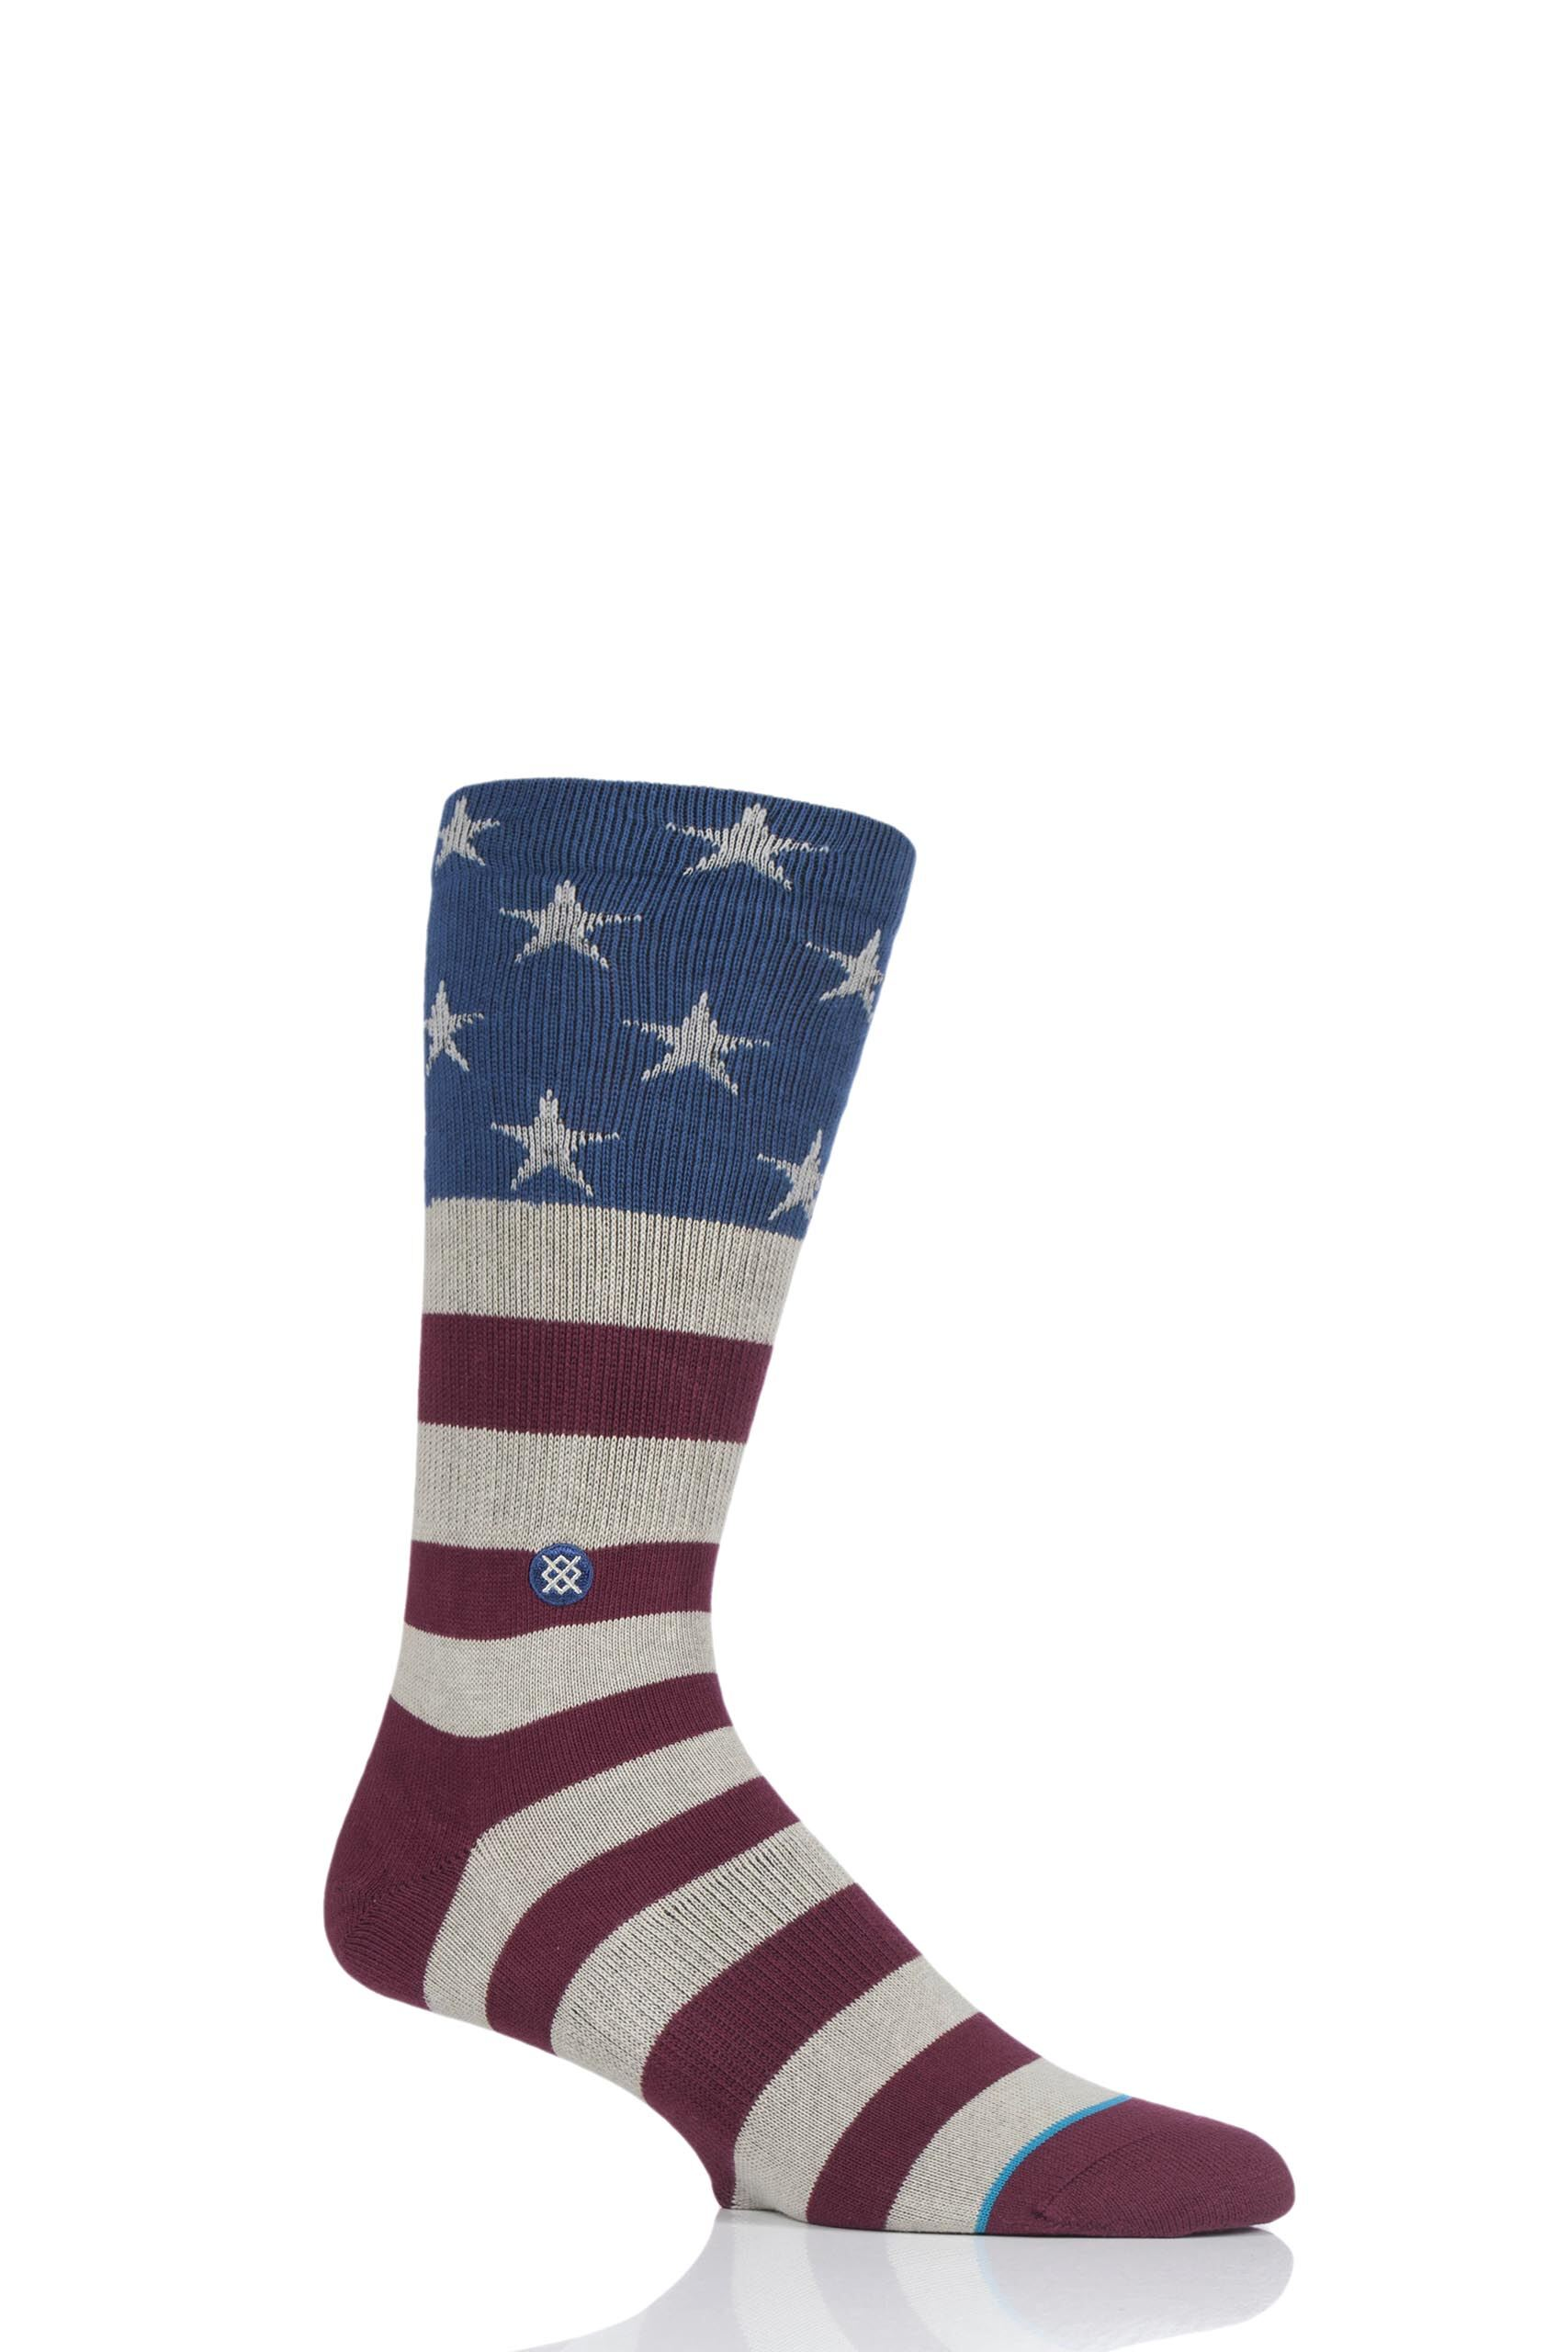 Image of 1 Pair Assorted The Fourth American Flag Cotton Socks Men's 5.5-8 Mens - Stance